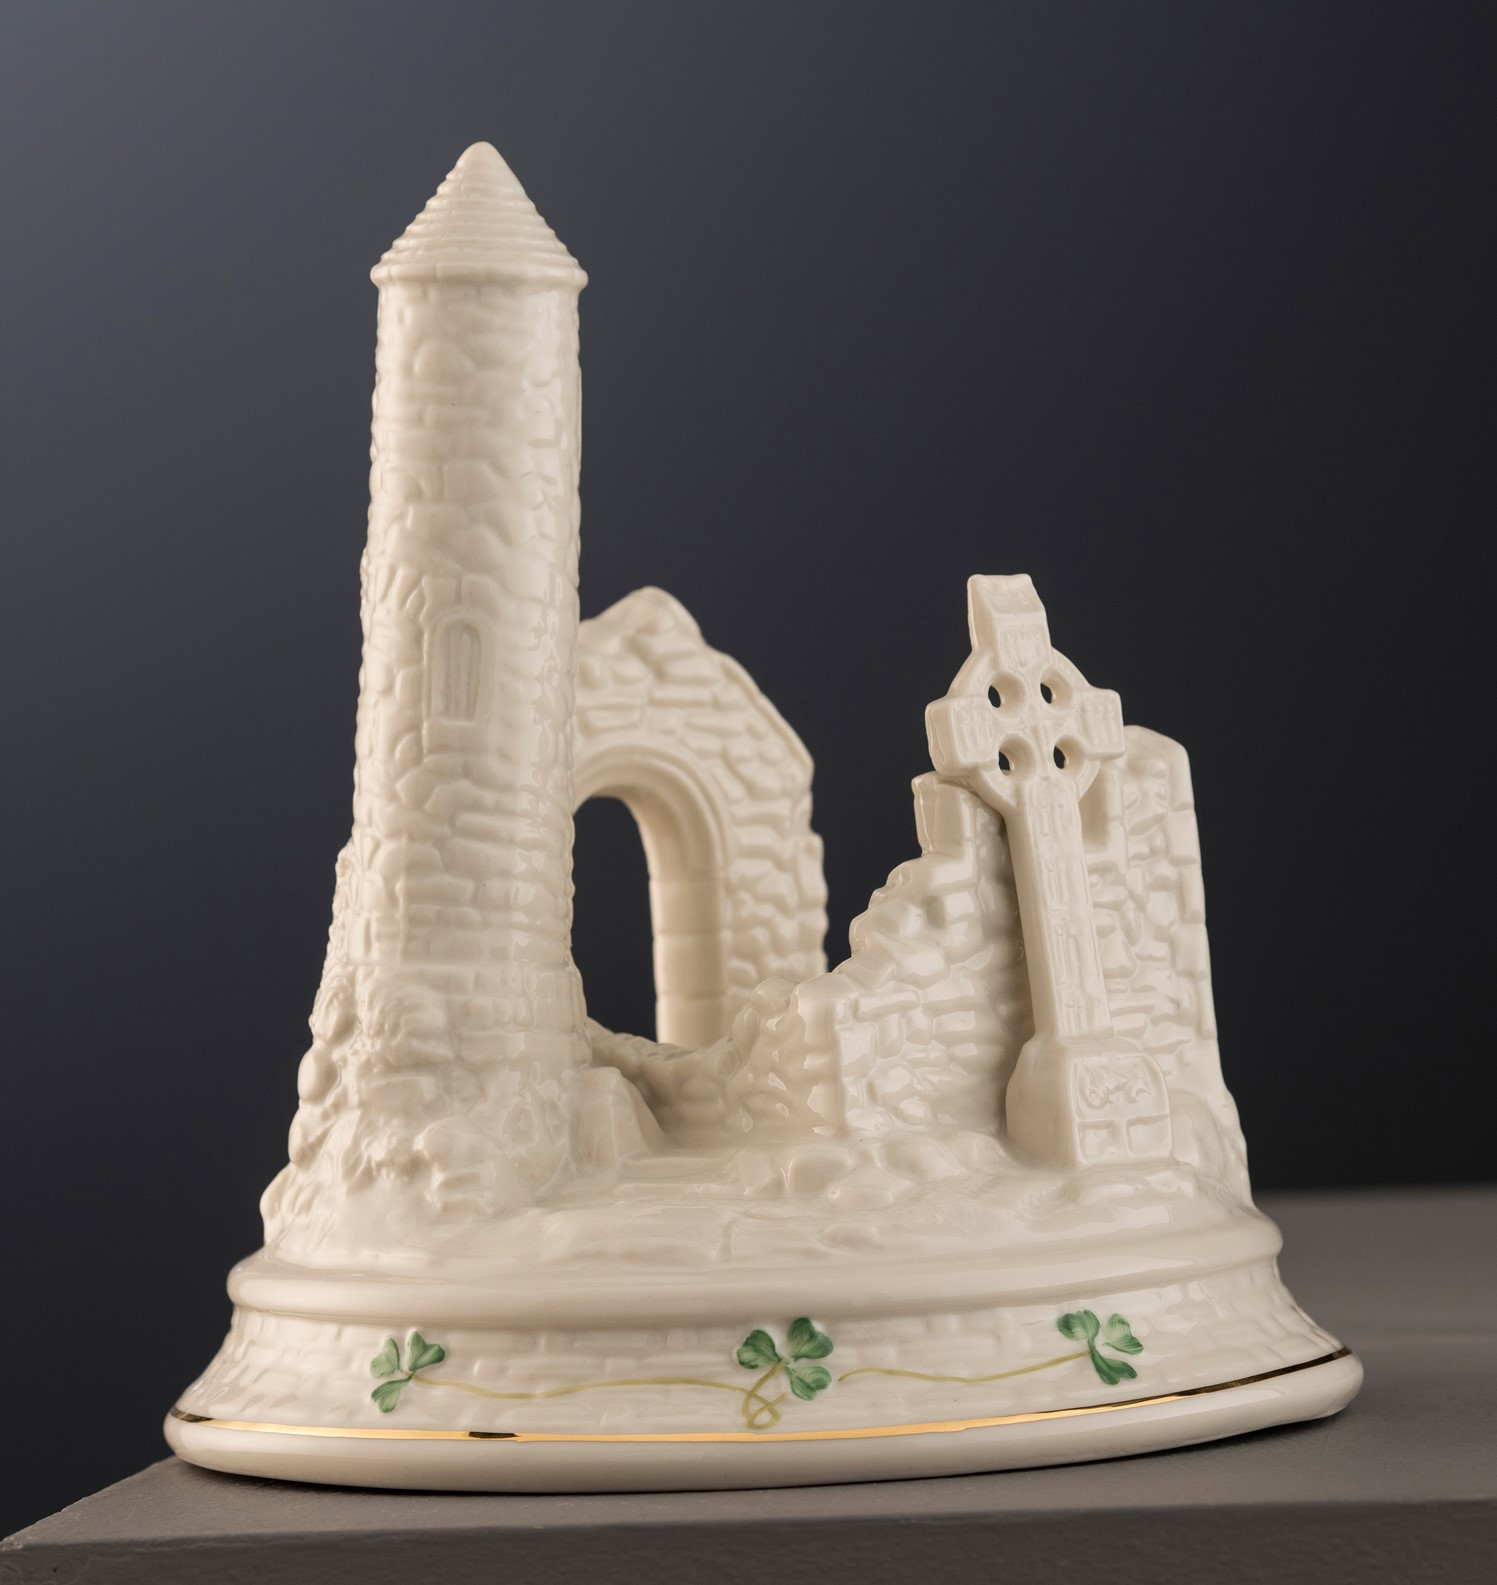 Devenish Island from the Masterpiece Collection Presented to HRH The Duke of York, Prince Andrew Visit To Belleek Pottery September 2018